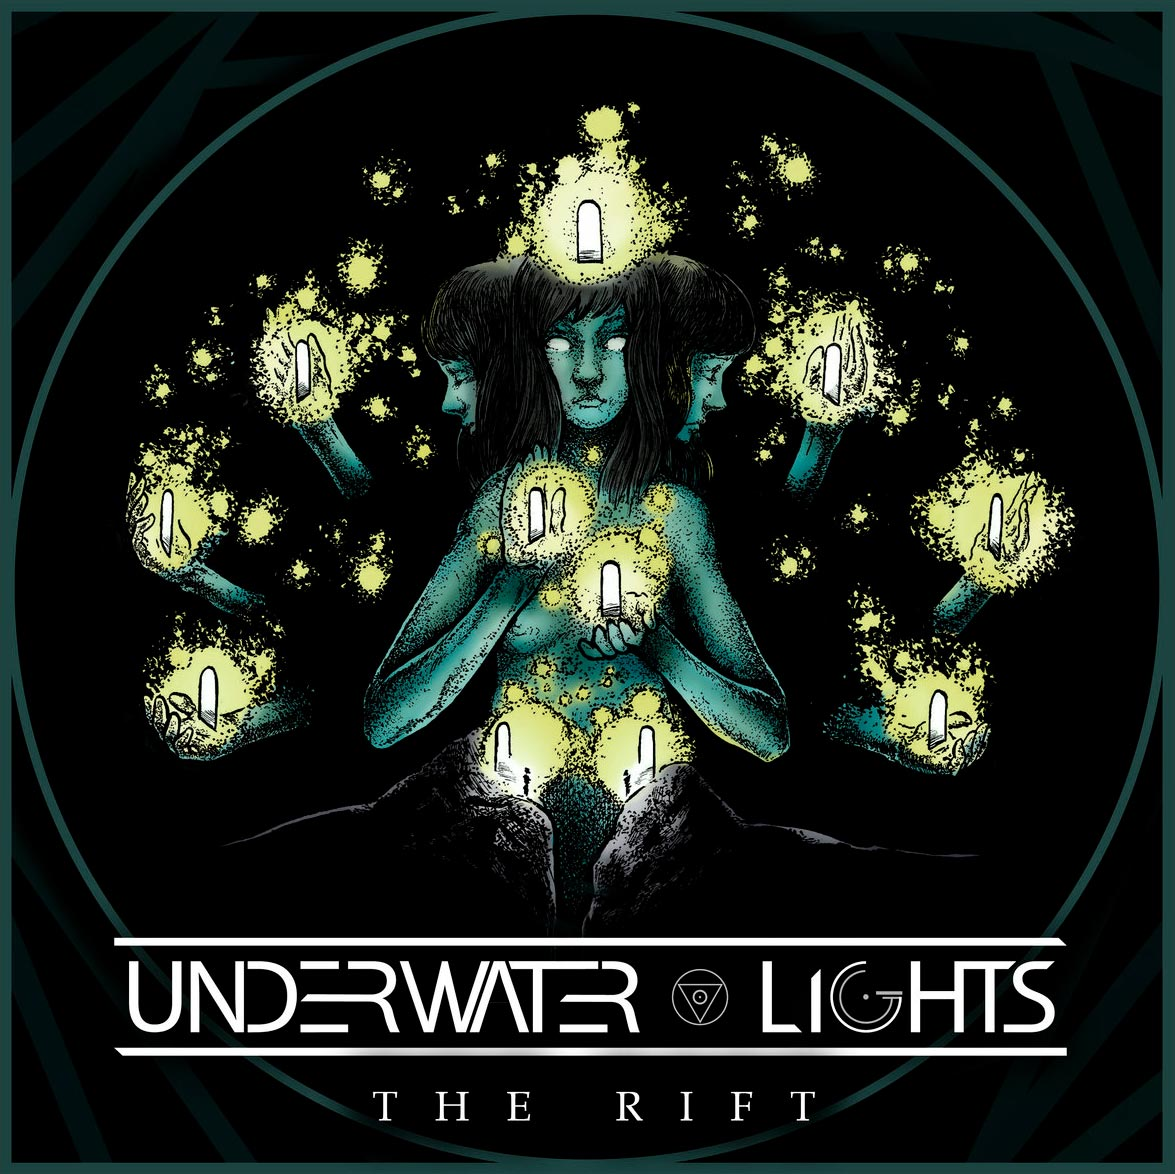 Underwater lights 'The Rift' (EP), hay cantera